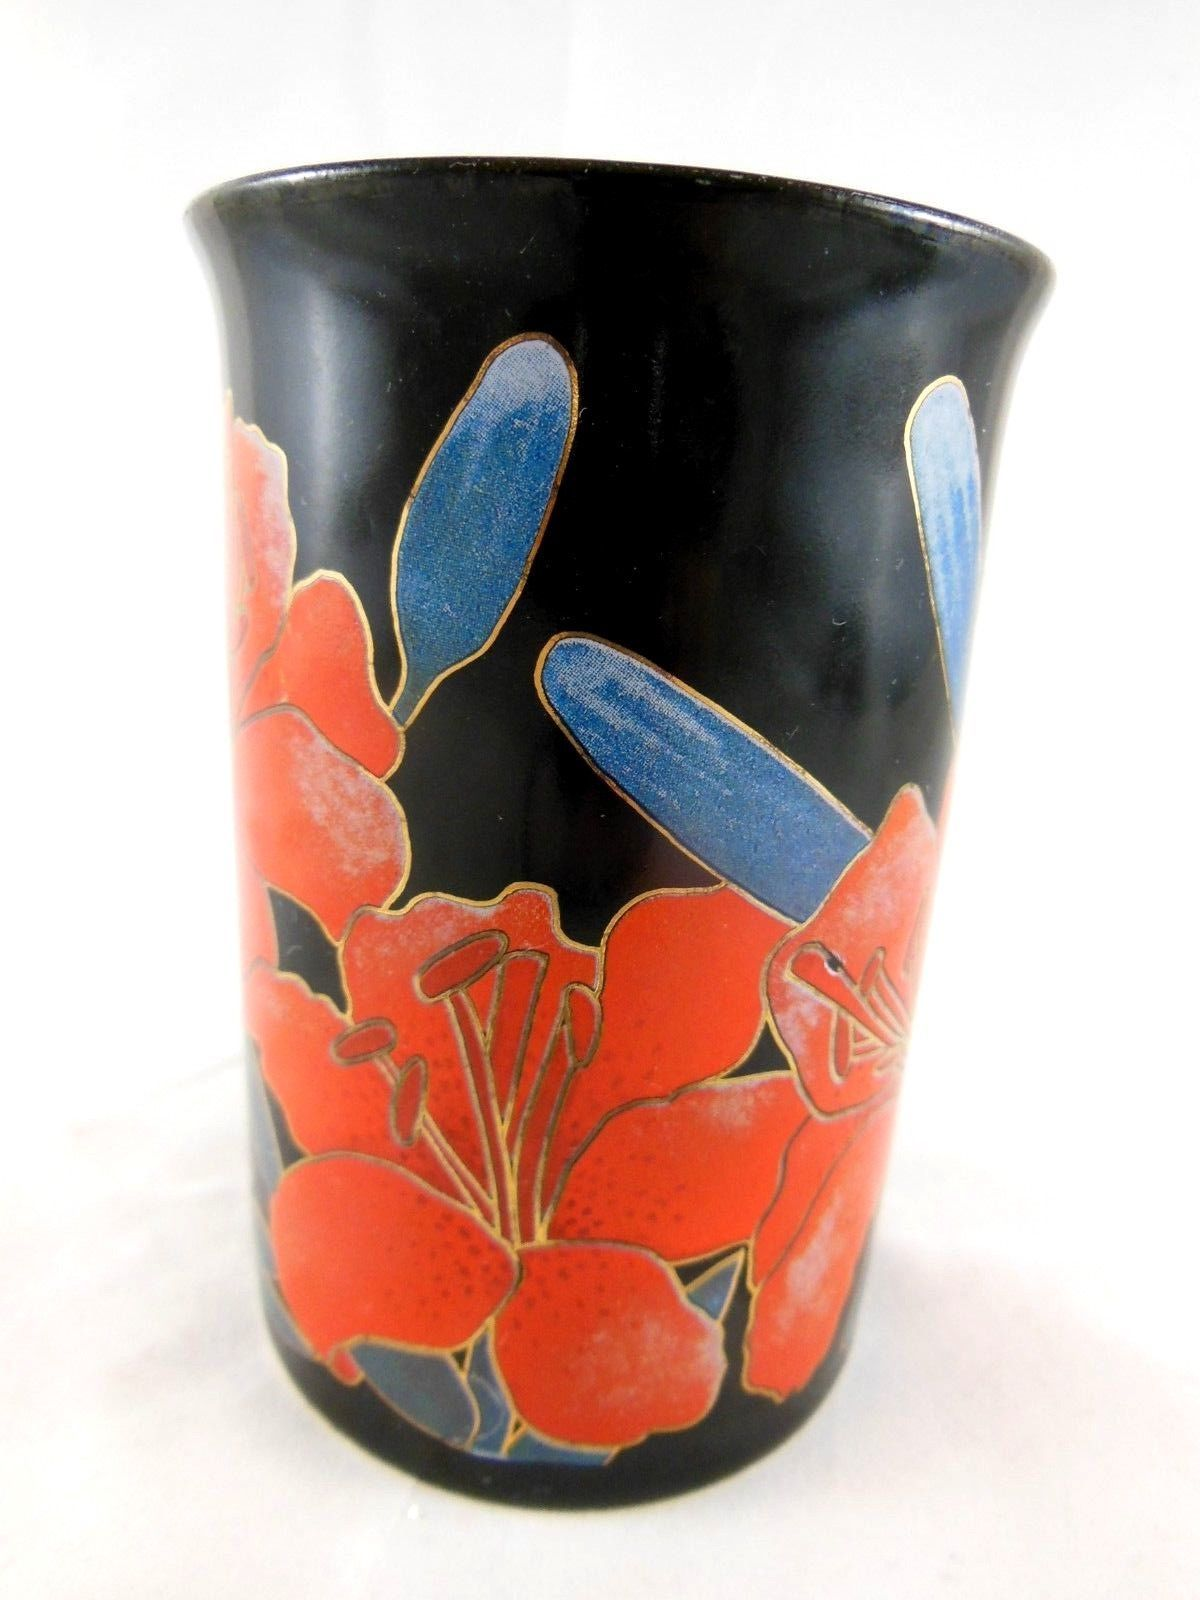 Dunoon Stoneware Mug Cup  Eden Designed by Ruth Boden Made in  Scotland